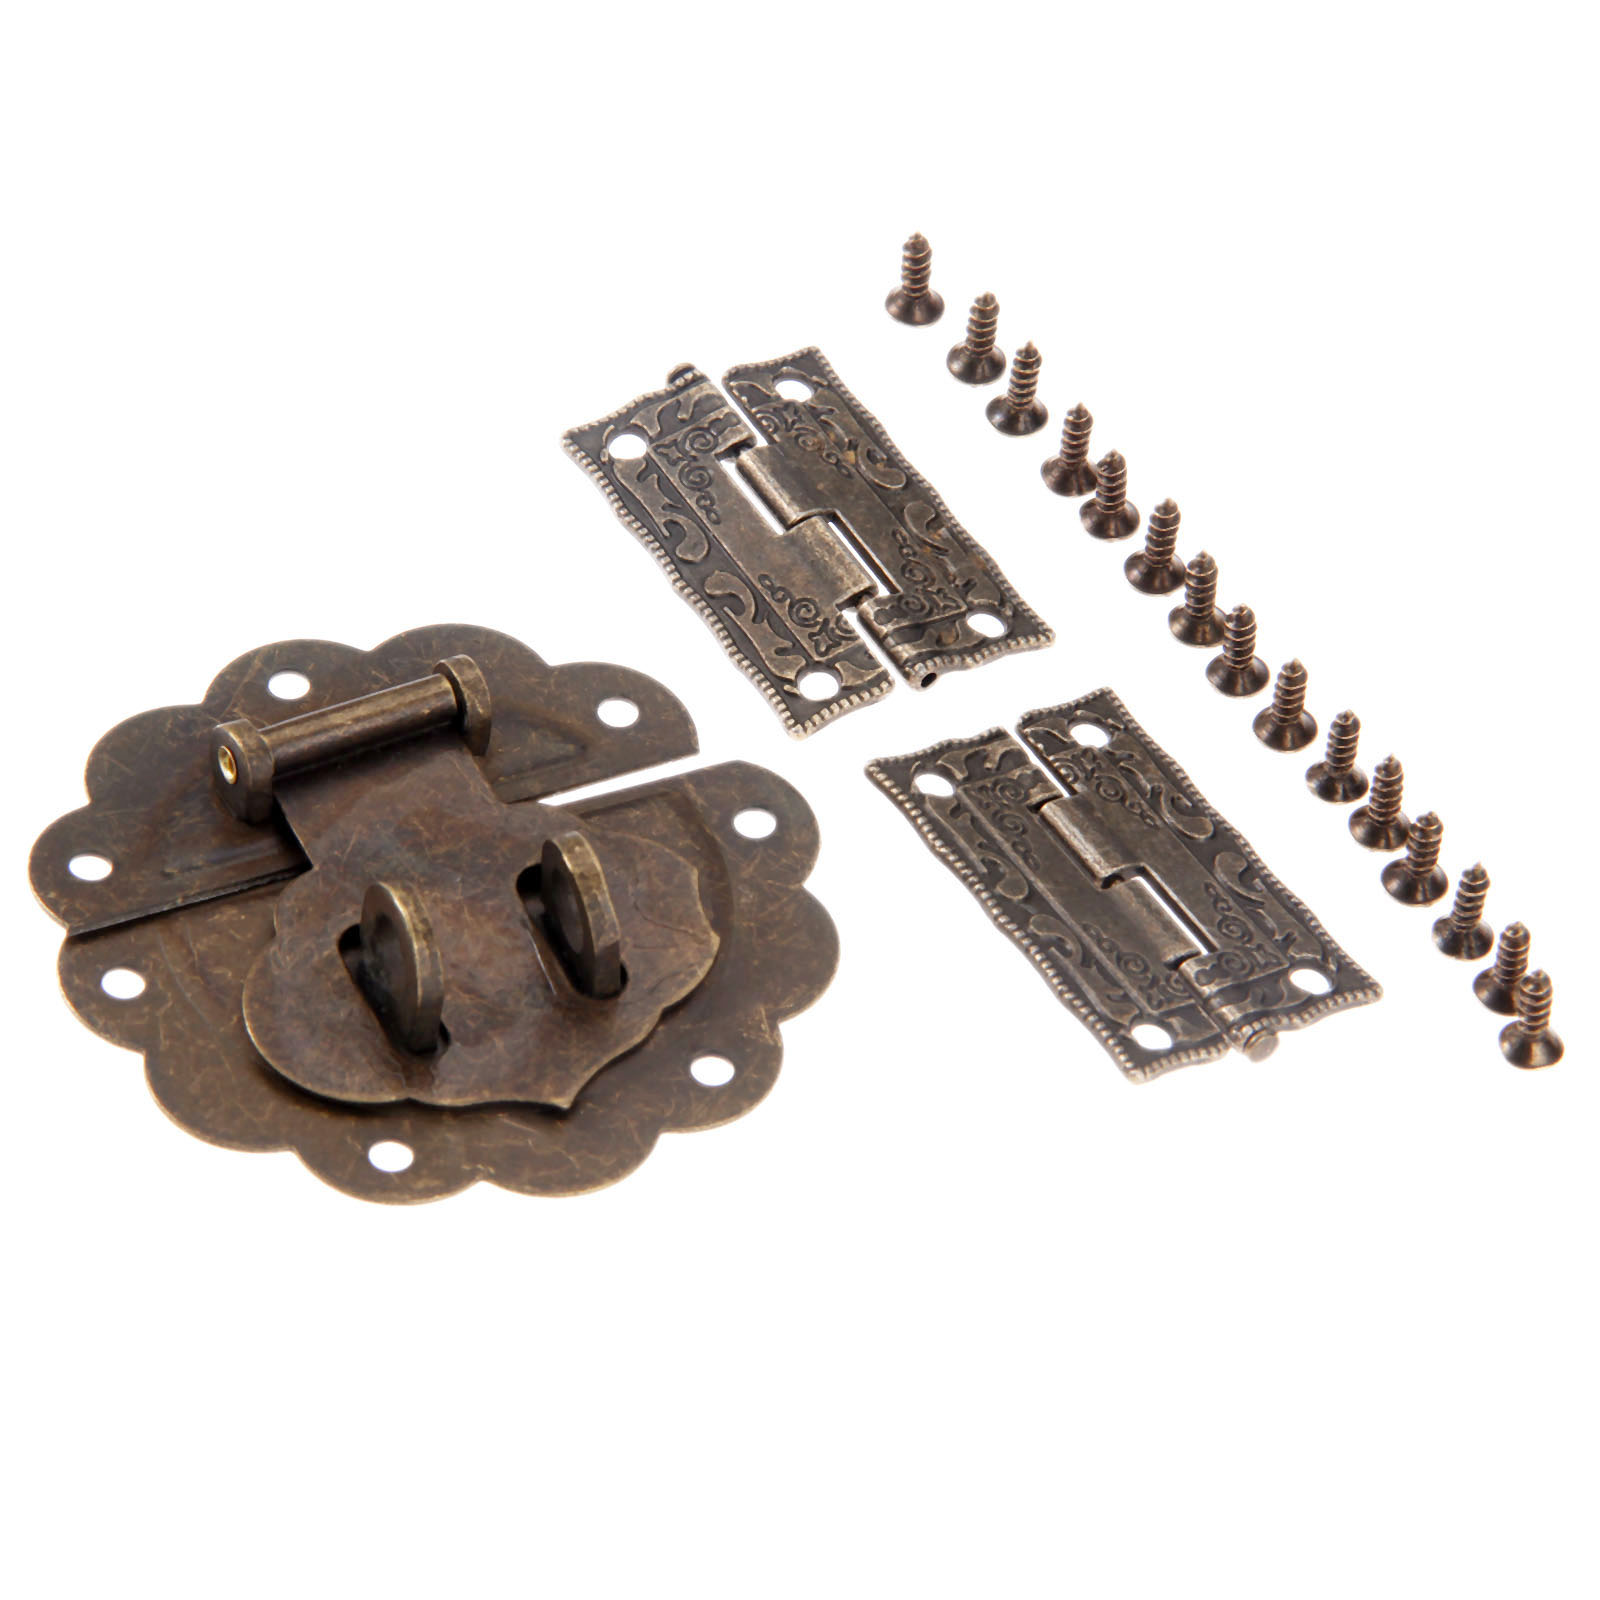 3pcs/kit Latch Hasp Toggle Buckle+ Hinges Antique Bronze Vintage Decor Furniture Hardware Jewelry Wood Box case Cabinet Cupboad